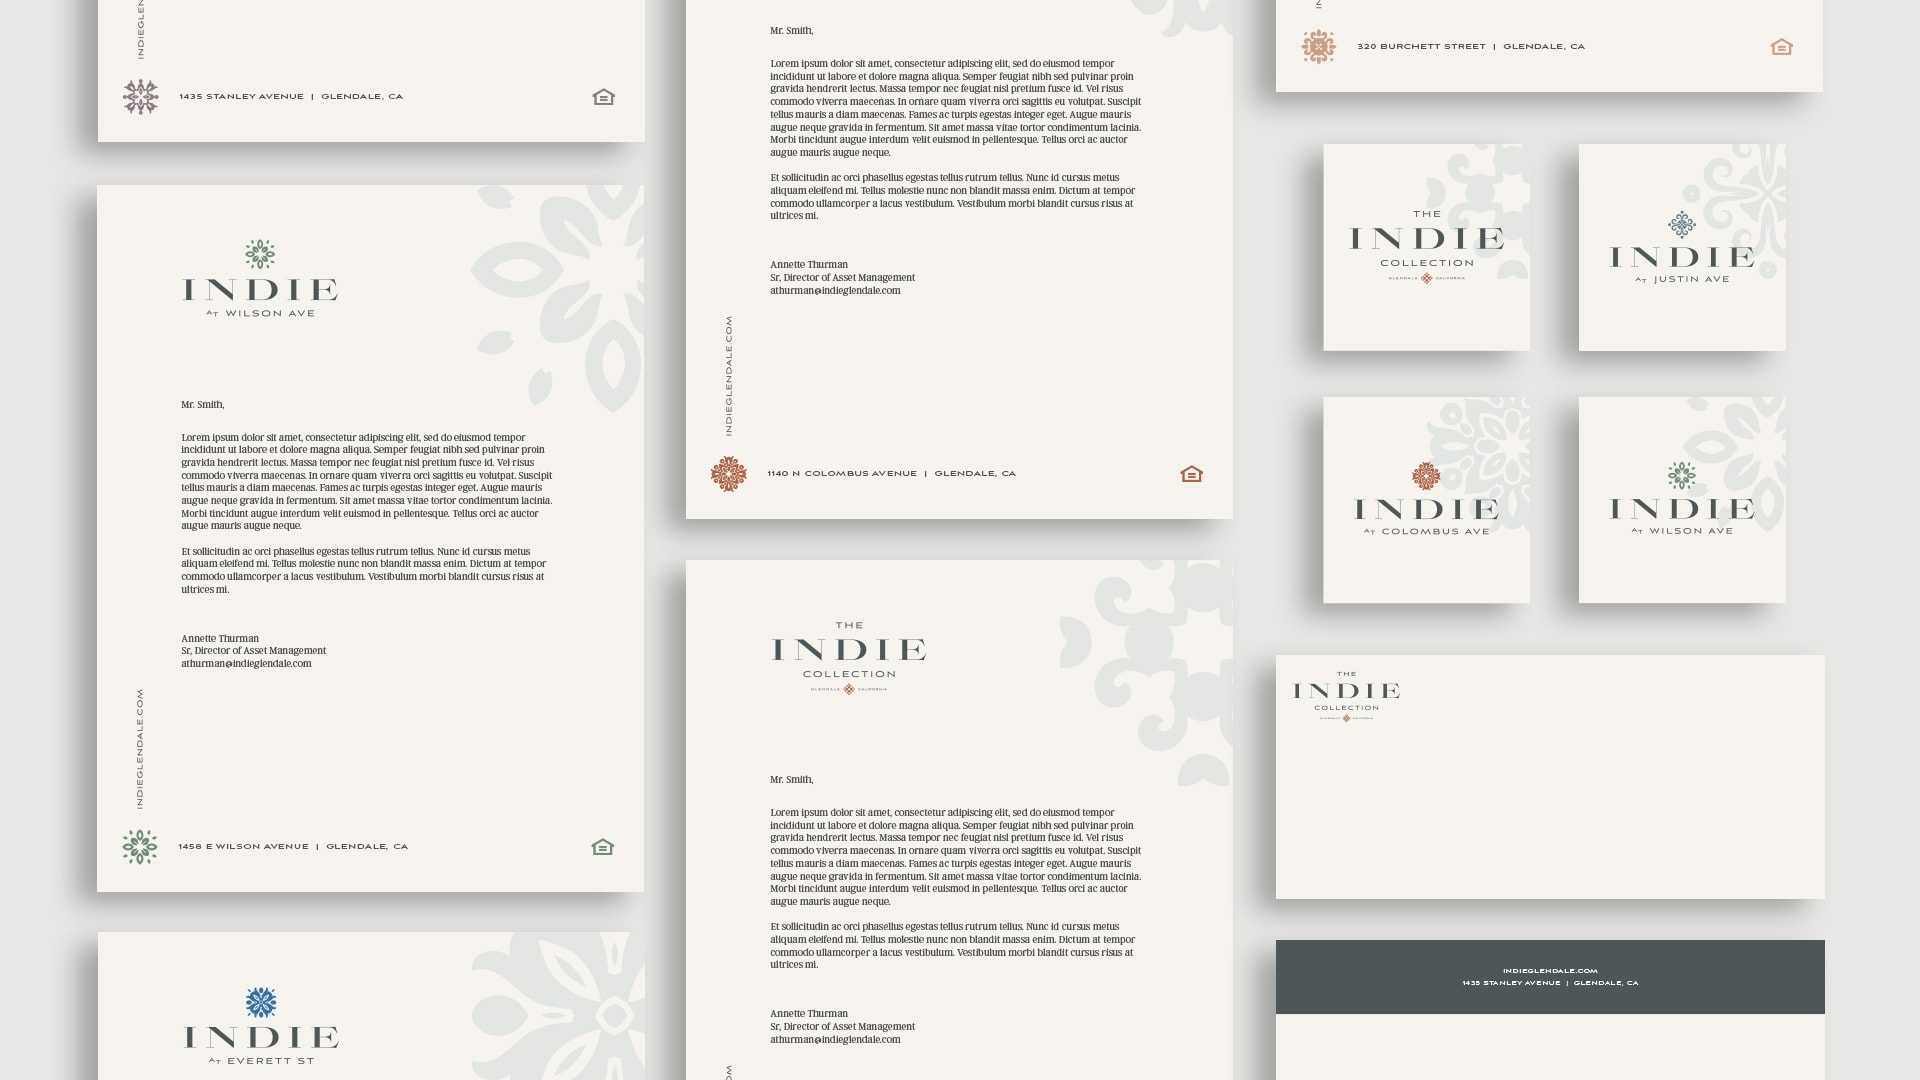 The Indie Collection Stationery - Unsung Studio Branding